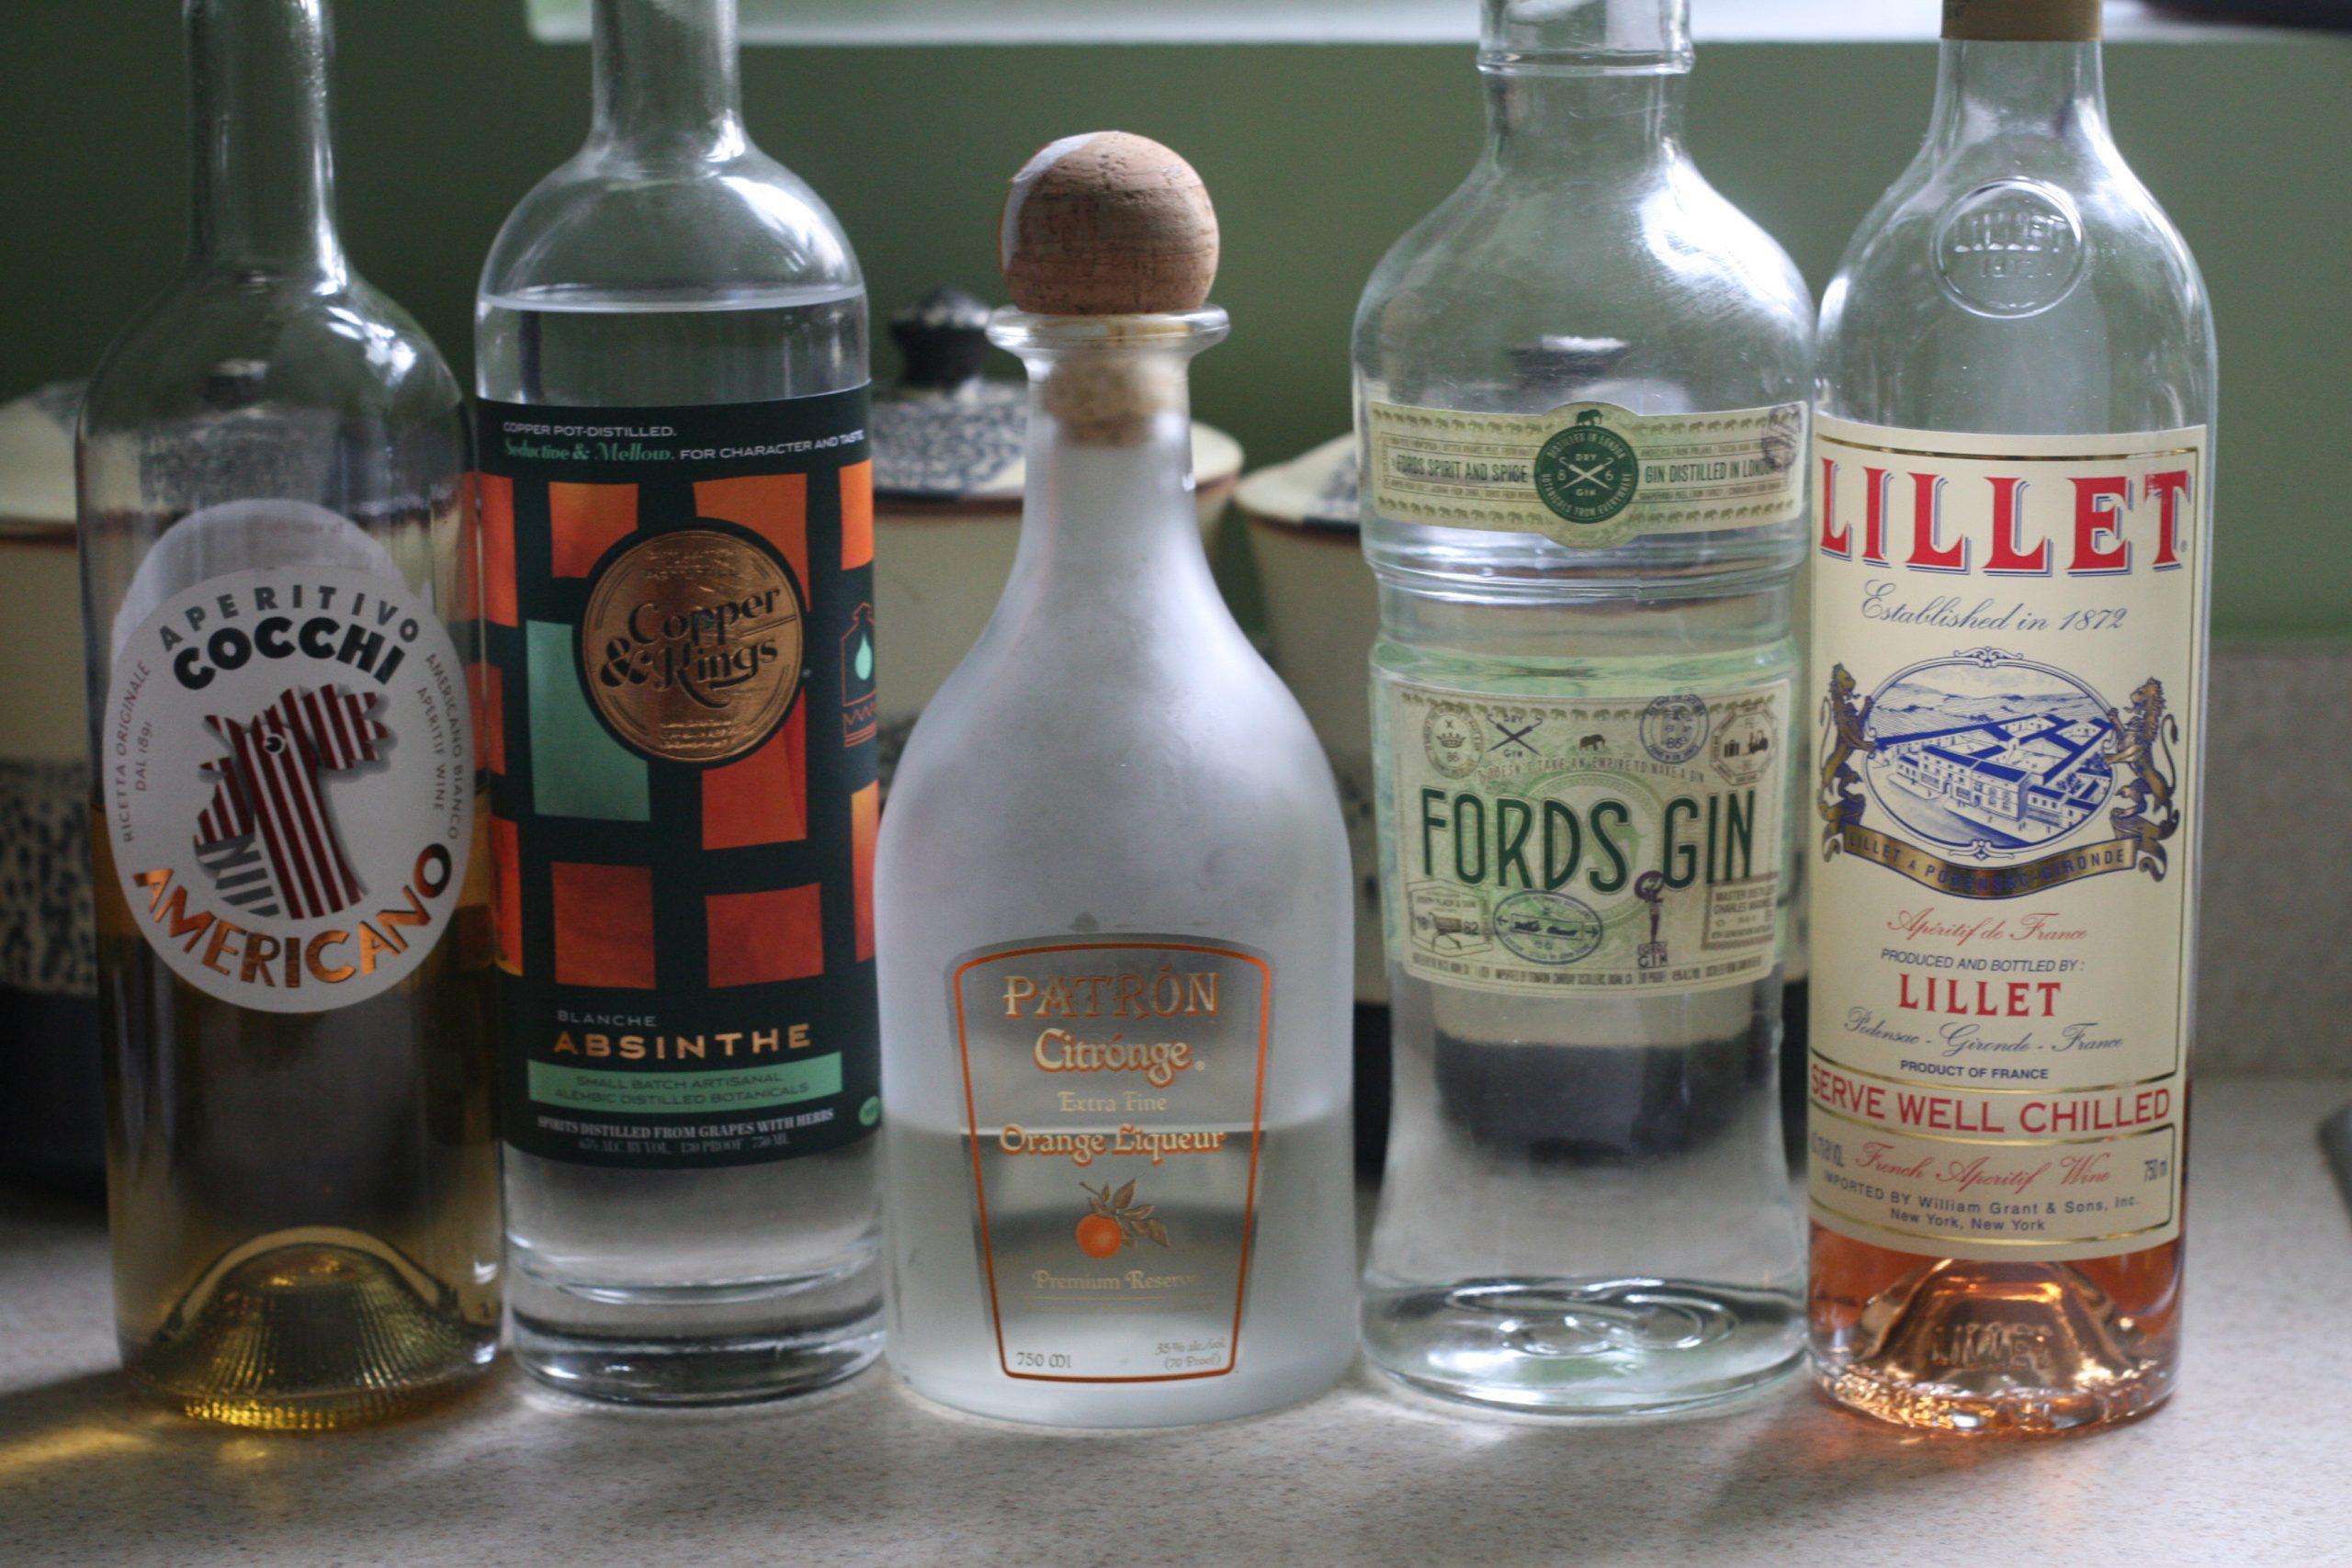 The ingredients for a Corpse Reviver 2 (plus an extra fortified wine)